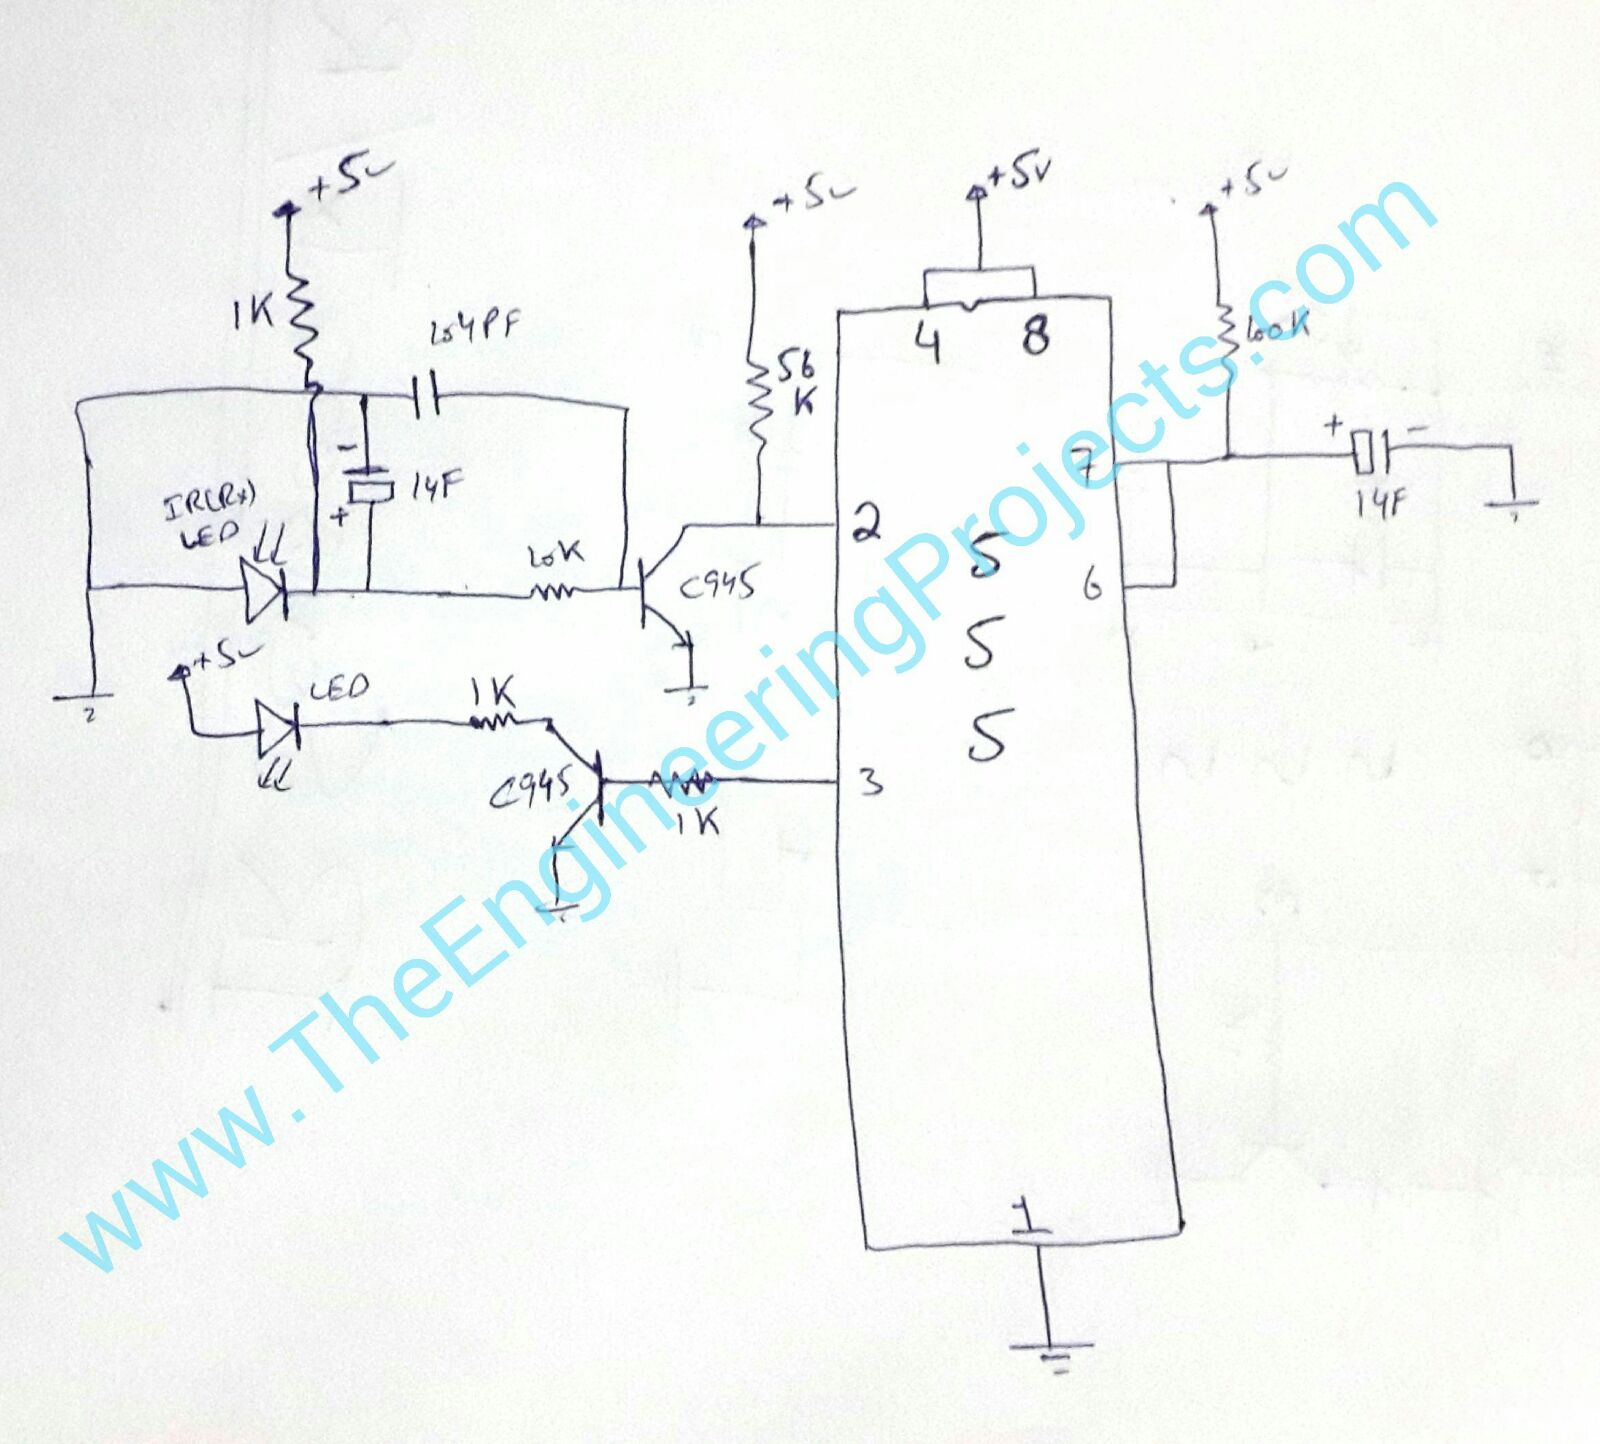 Circuit Diagram Of Ir Sensor Using 555 Timer The Engineering Projects Design Calculator Software